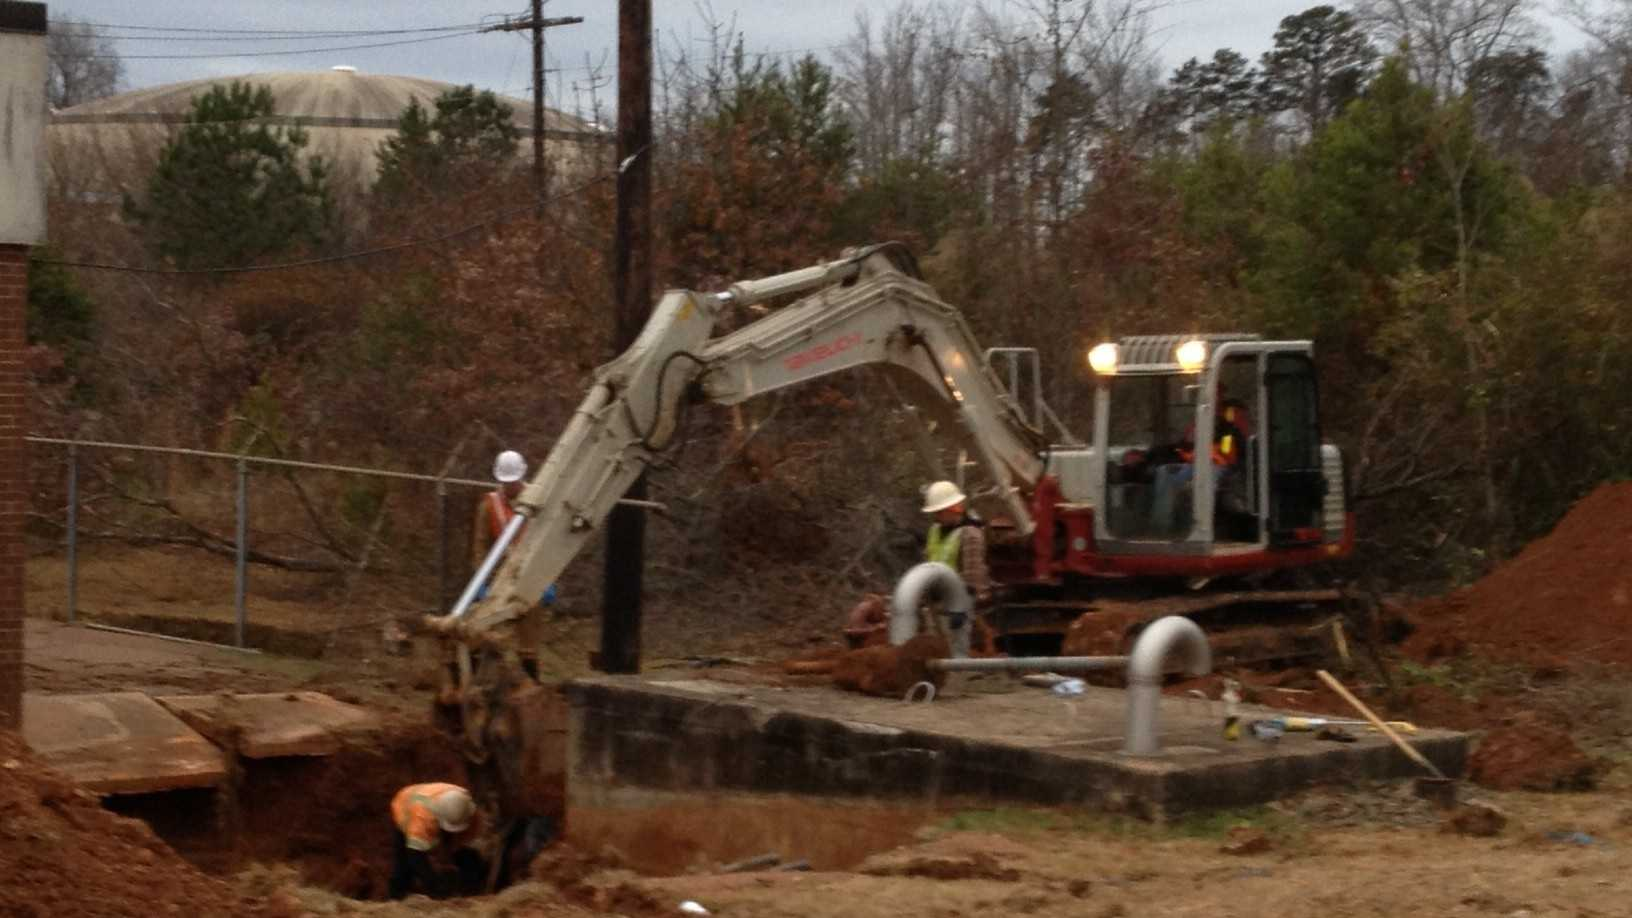 A water main break on Thursday affected a large area of Clemson, including Clemson University, Sandy Springs and Pendleton, according to the Anderson Regional Joint Water System.